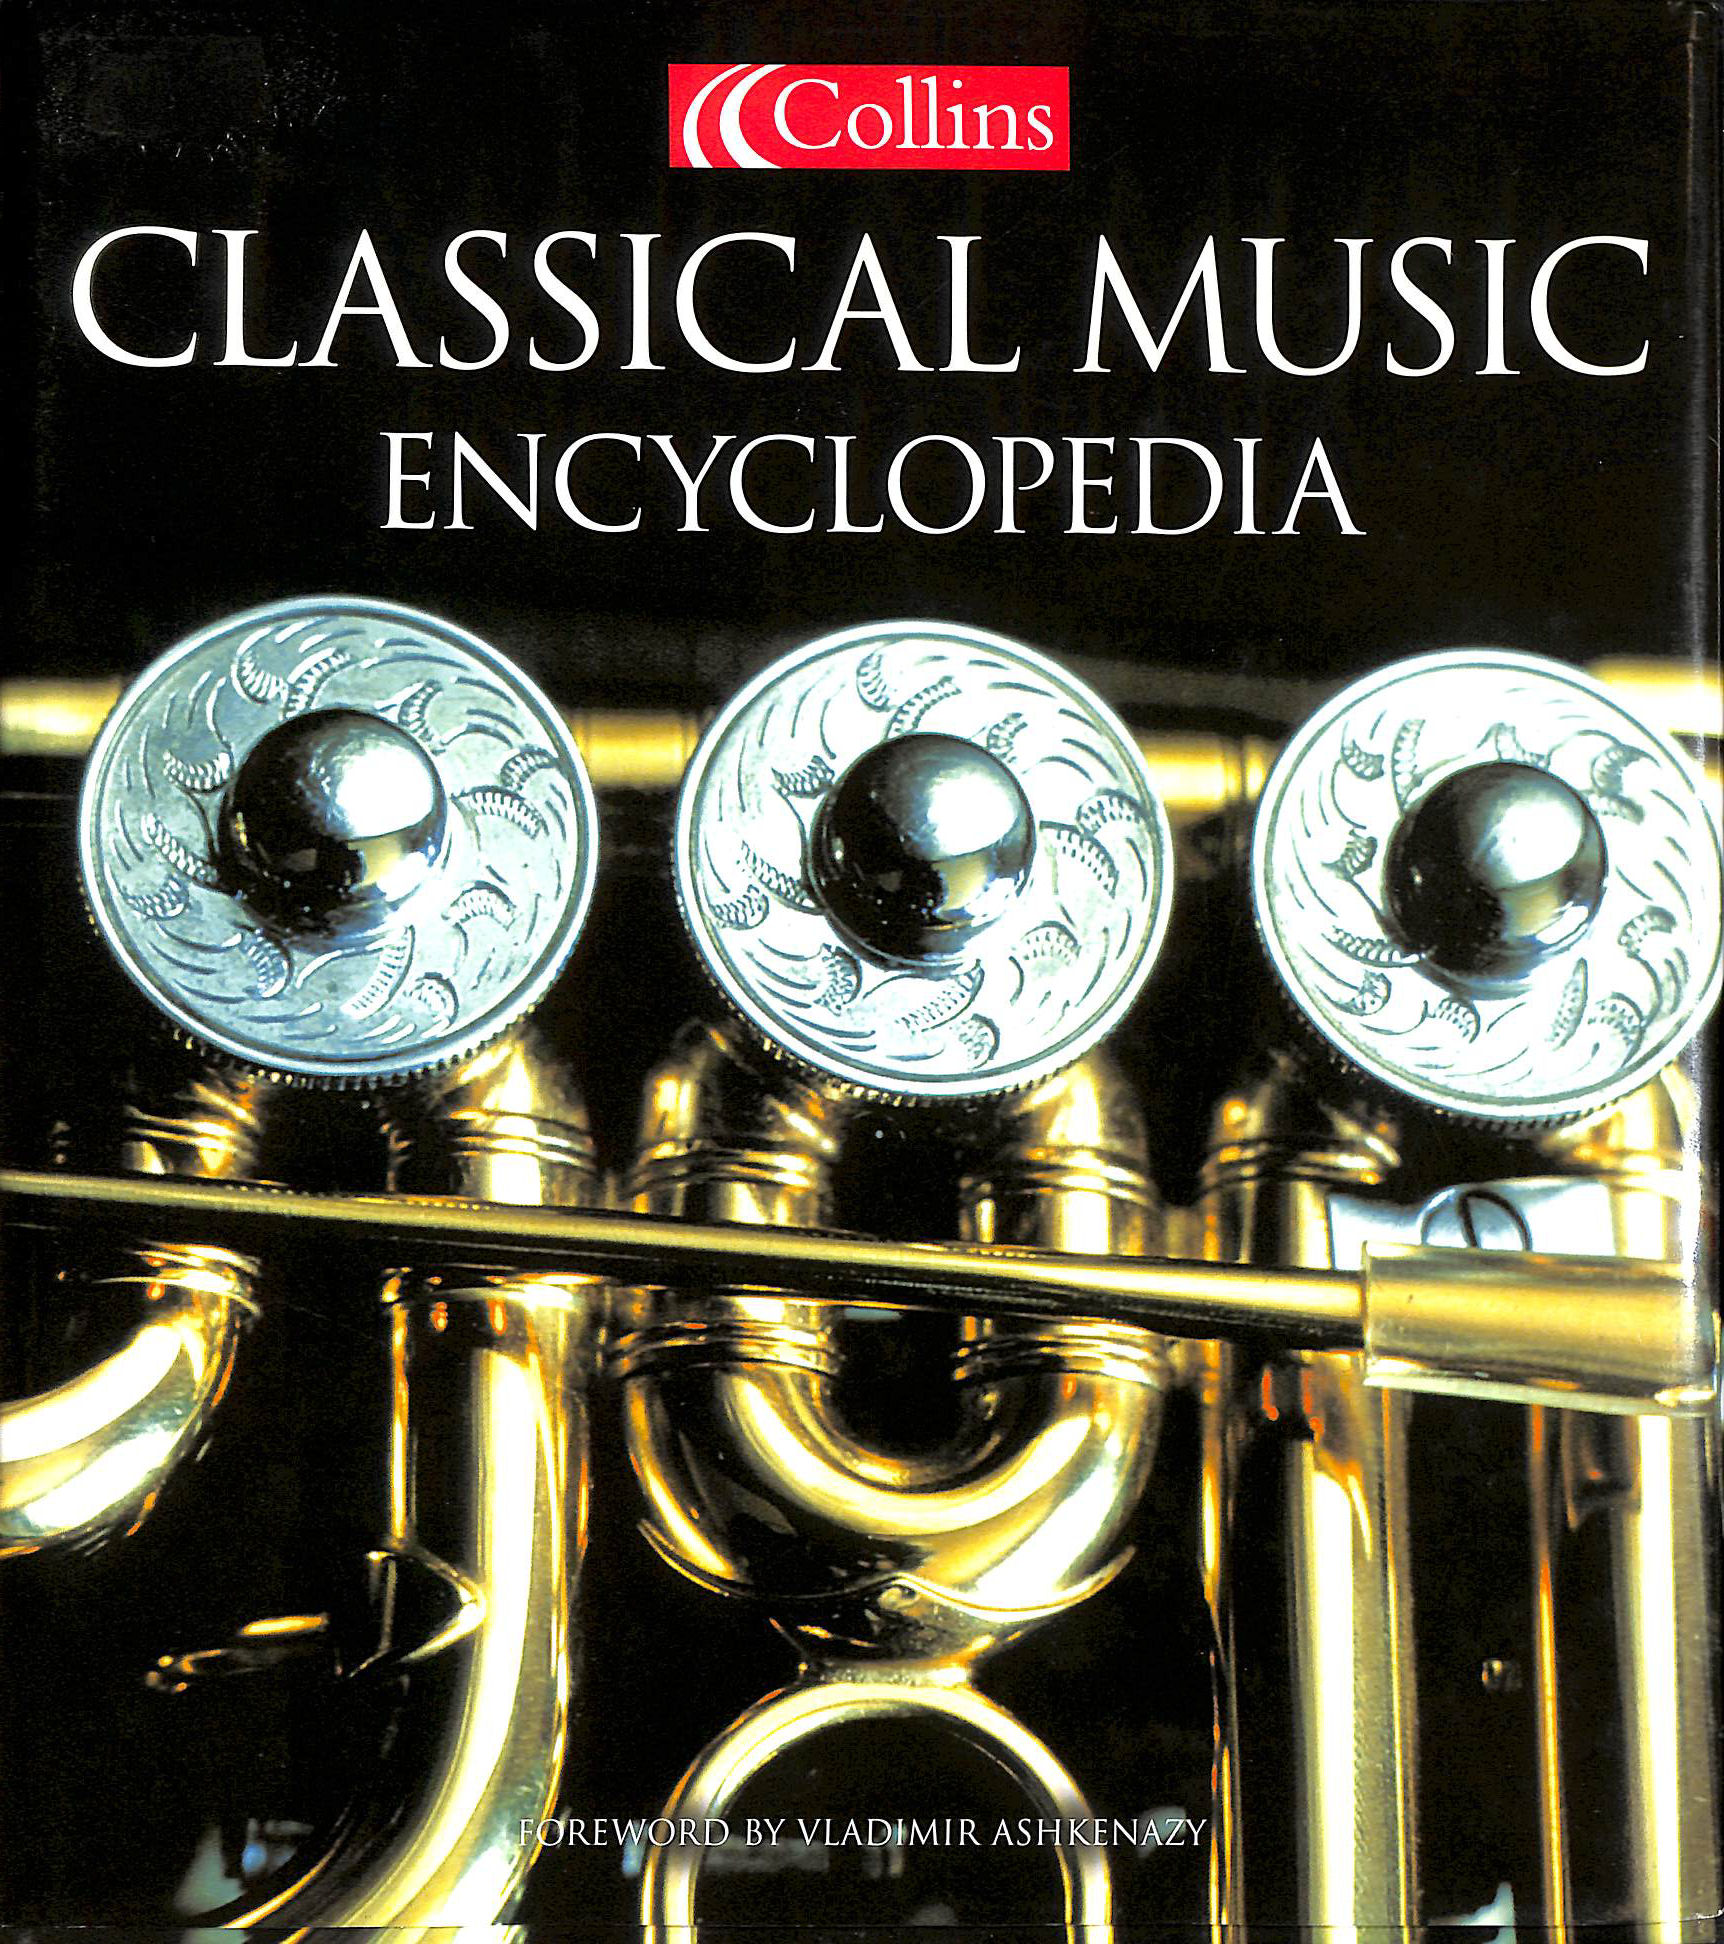 Image for Collins Classical Music Encyclopedia.